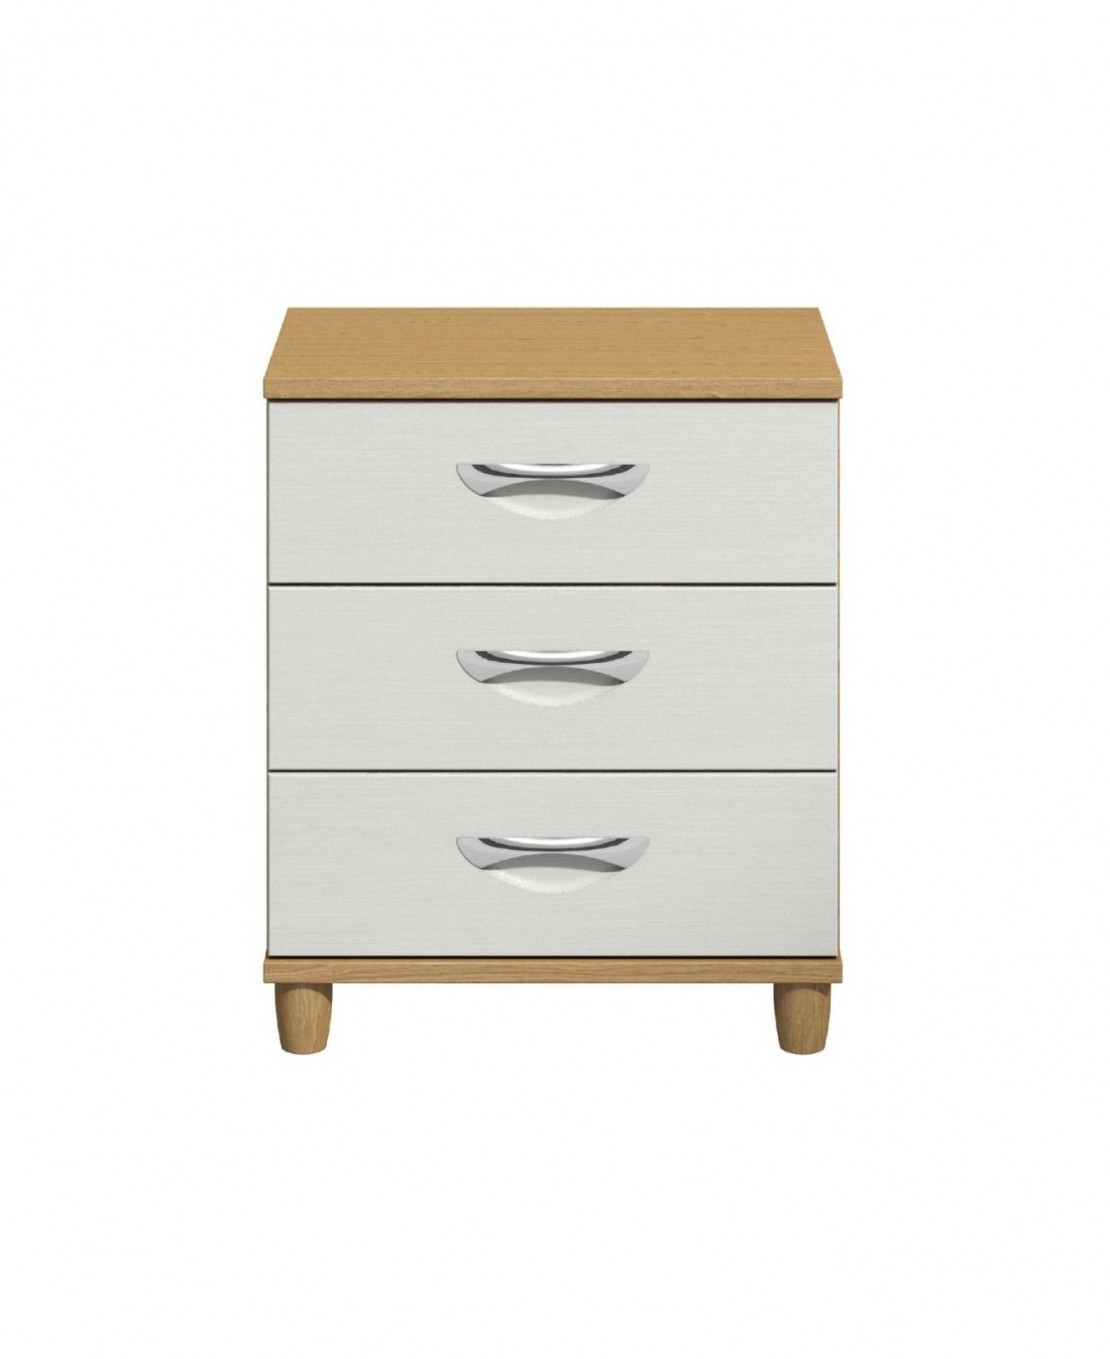 /_images/product-photos/kt-furniture-moda-white-3-drawer-wide-chest-a.jpg